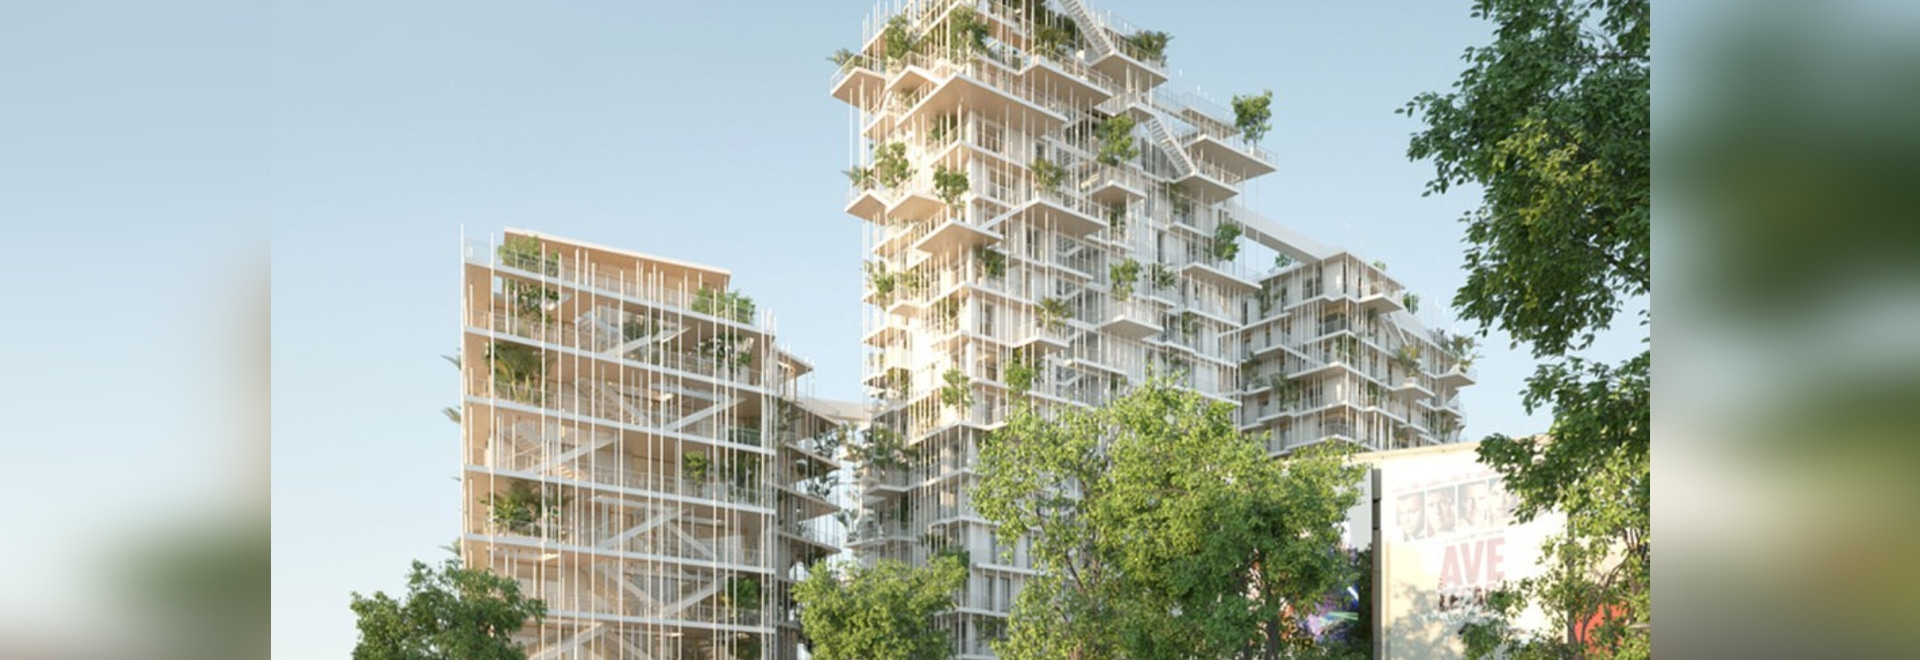 Bordeaux' Canopia tower will be one of the tallest timber frame structures in the world